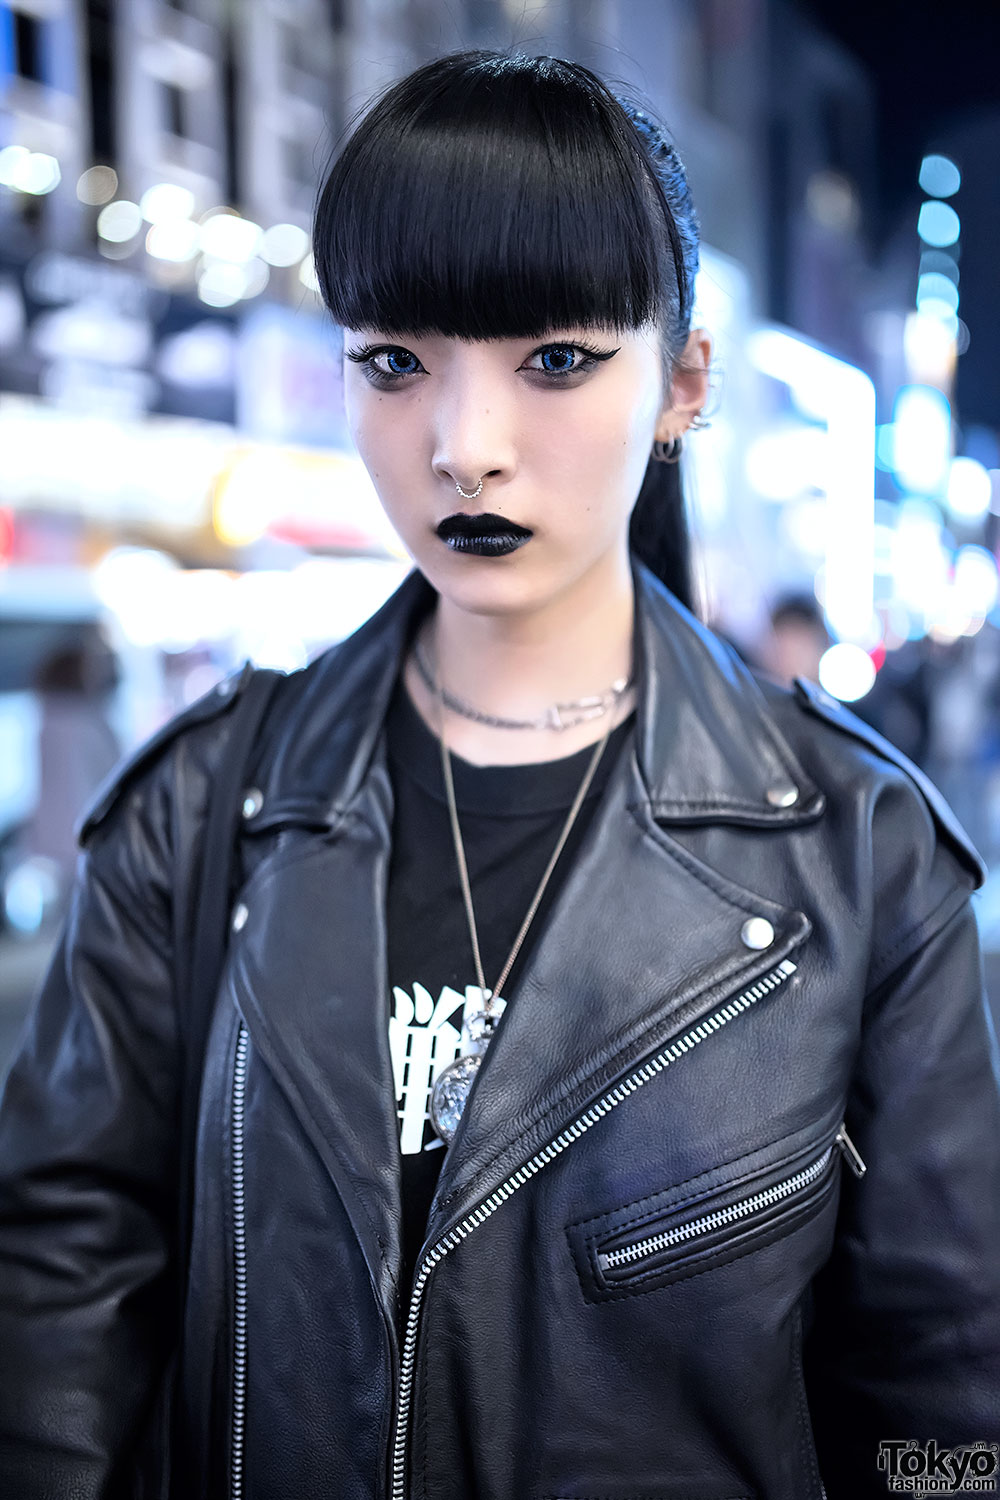 Biker Jacket, Evangelion Tee, Leather Pants & Creepers in Harajuku